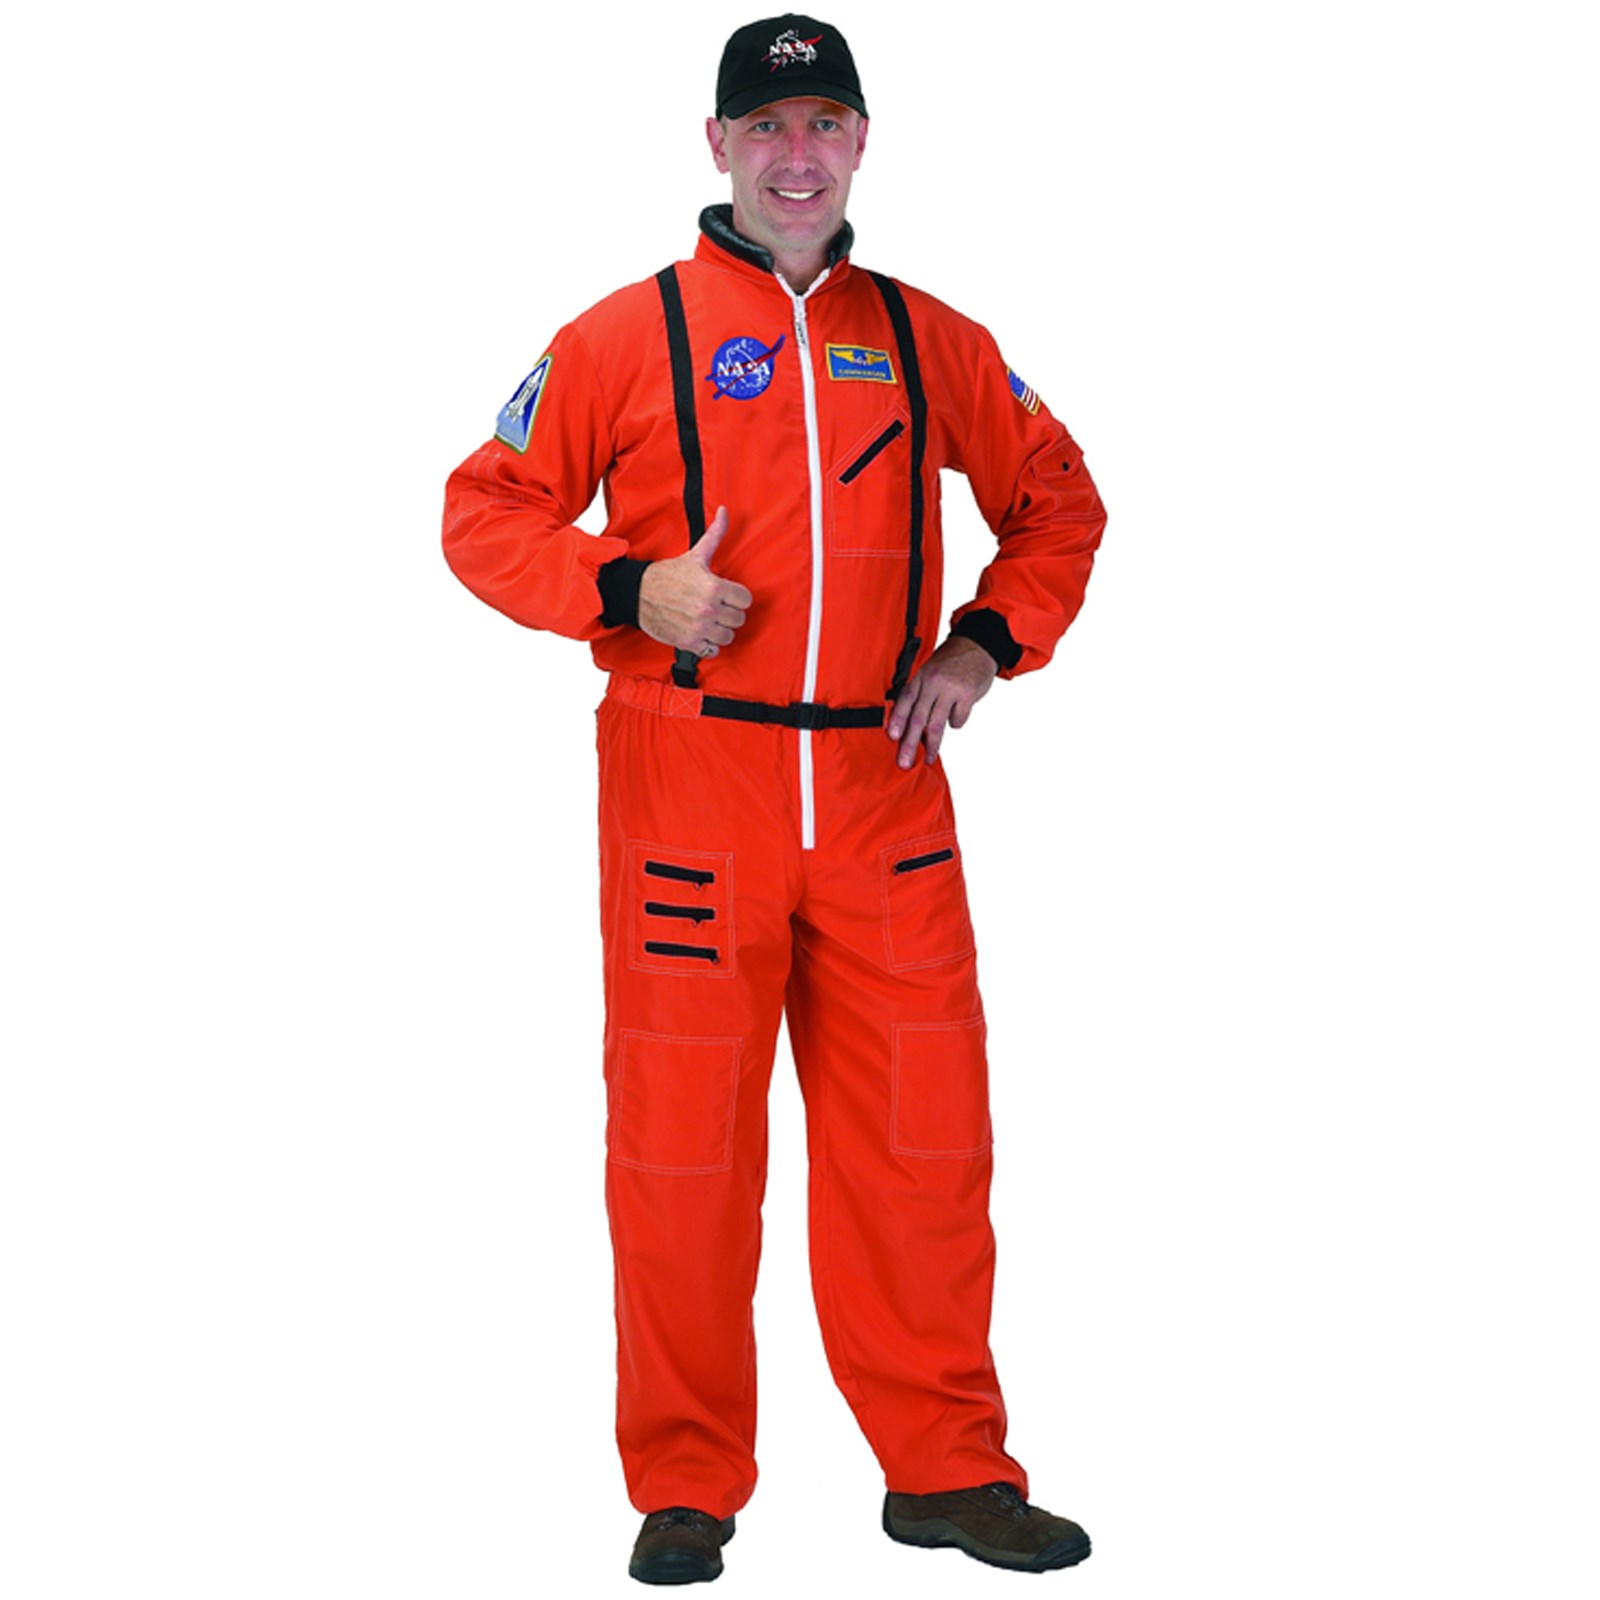 NASA Astronaut Orange Suit Adult Costume